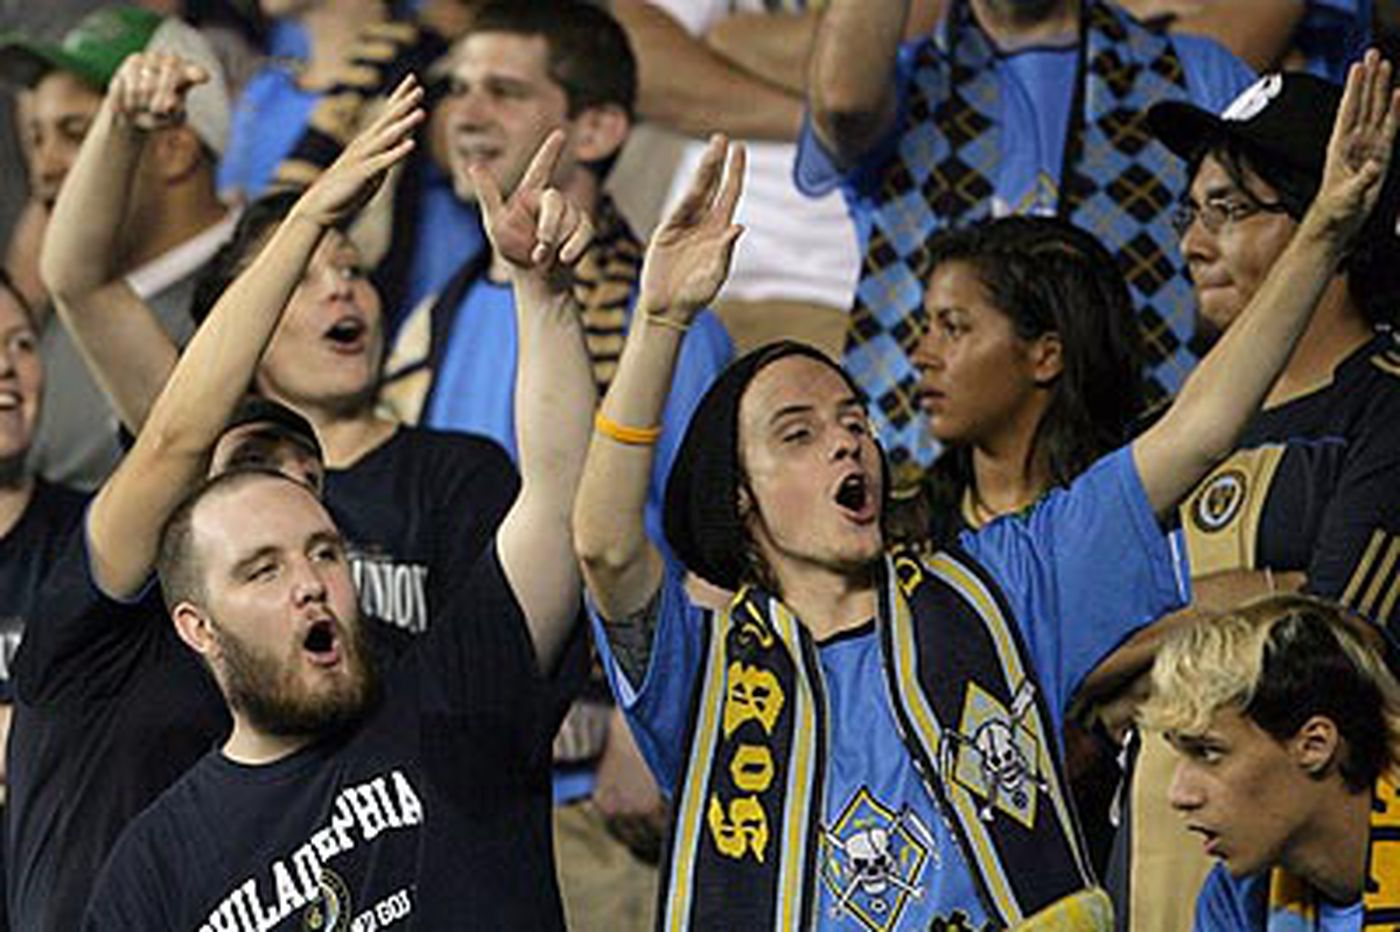 PPL Park a hit with fans, but some chants called foul